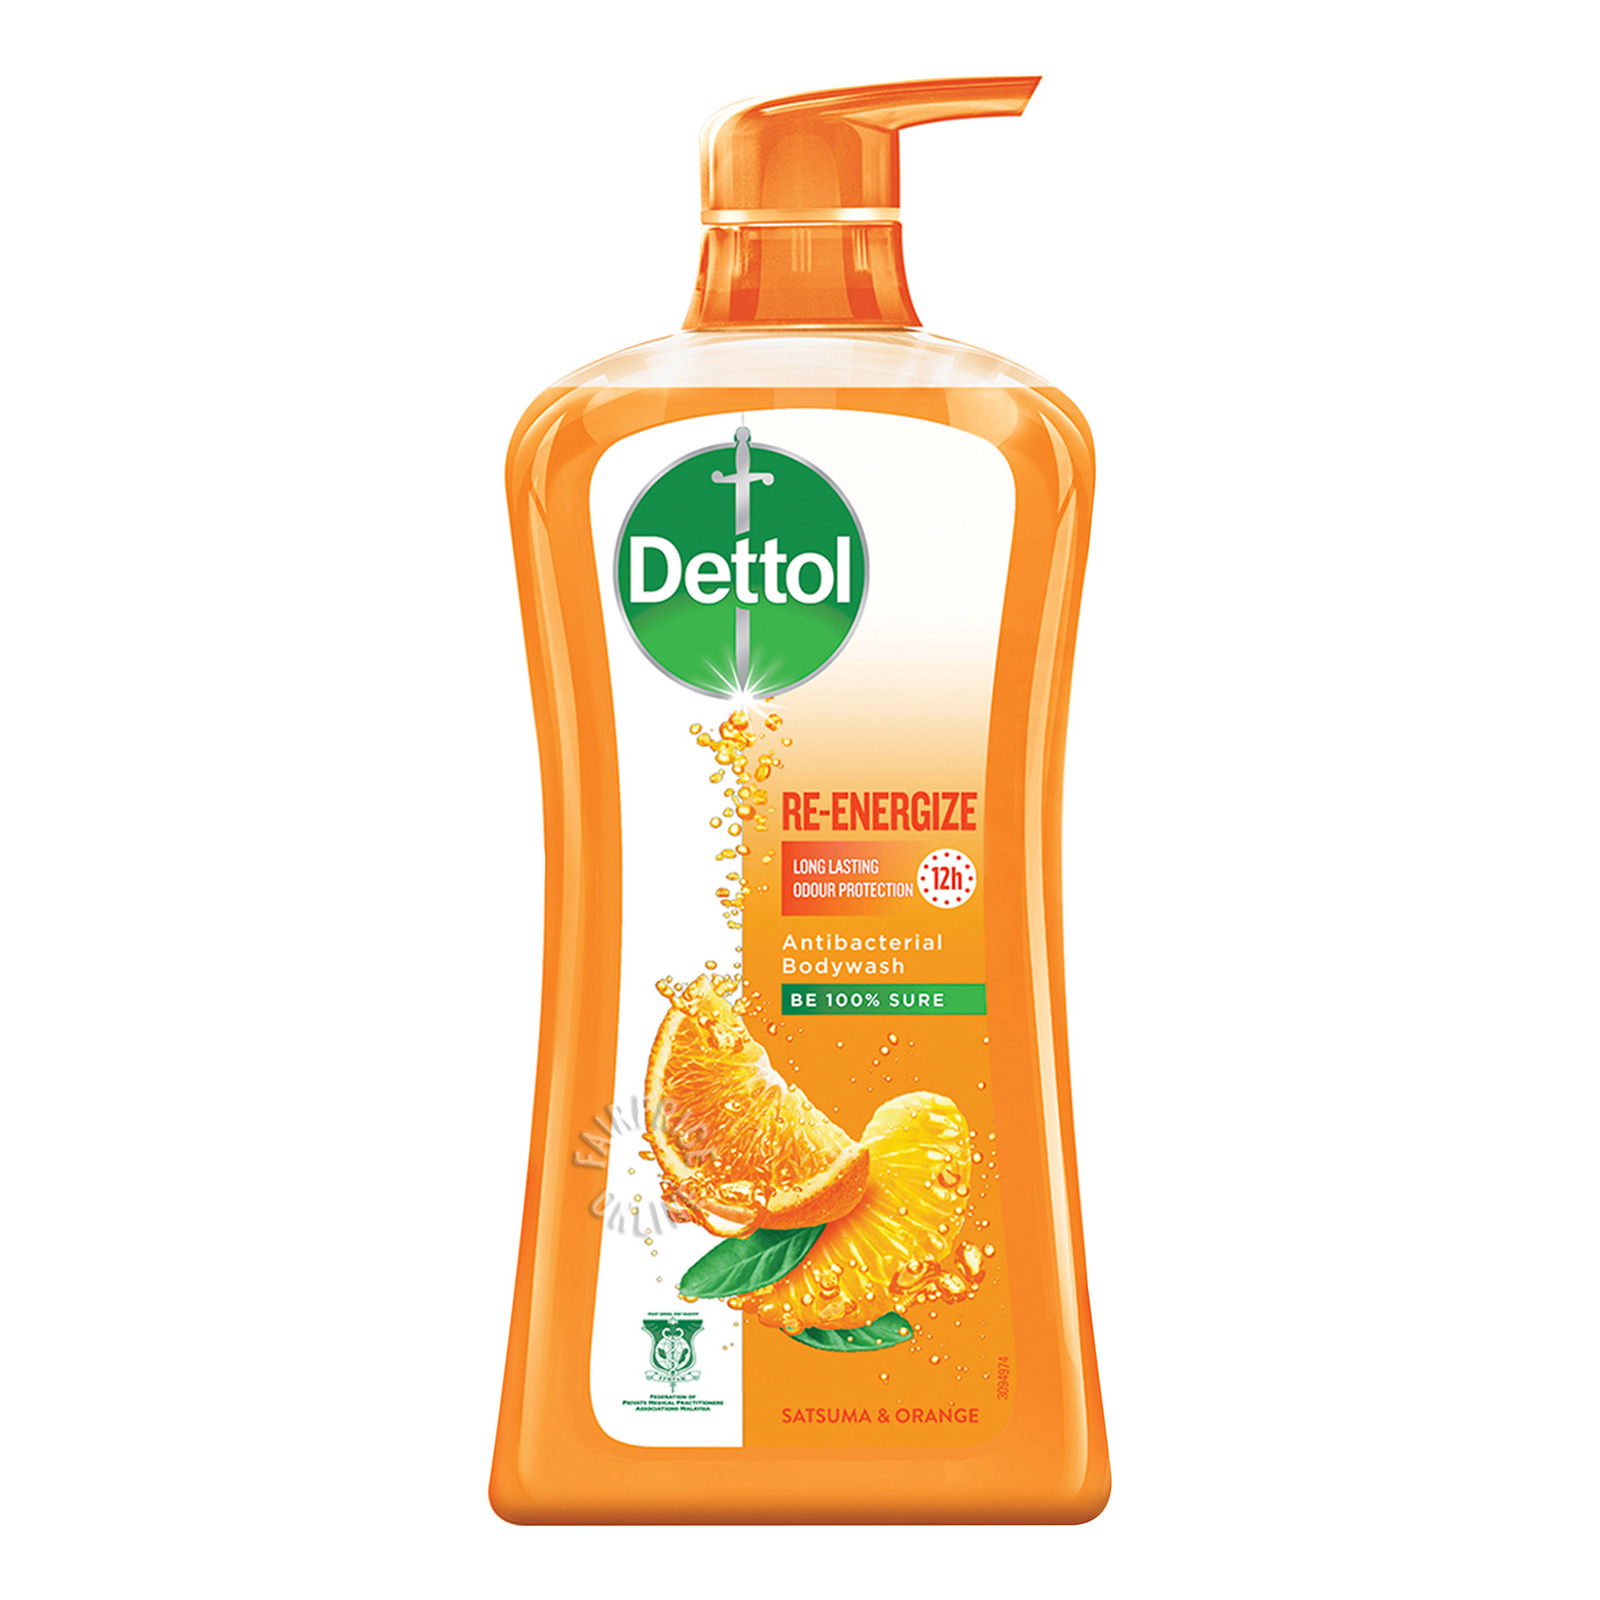 Dettol Anti-Bacterial pH-Balanced Body Wash - Re Energize